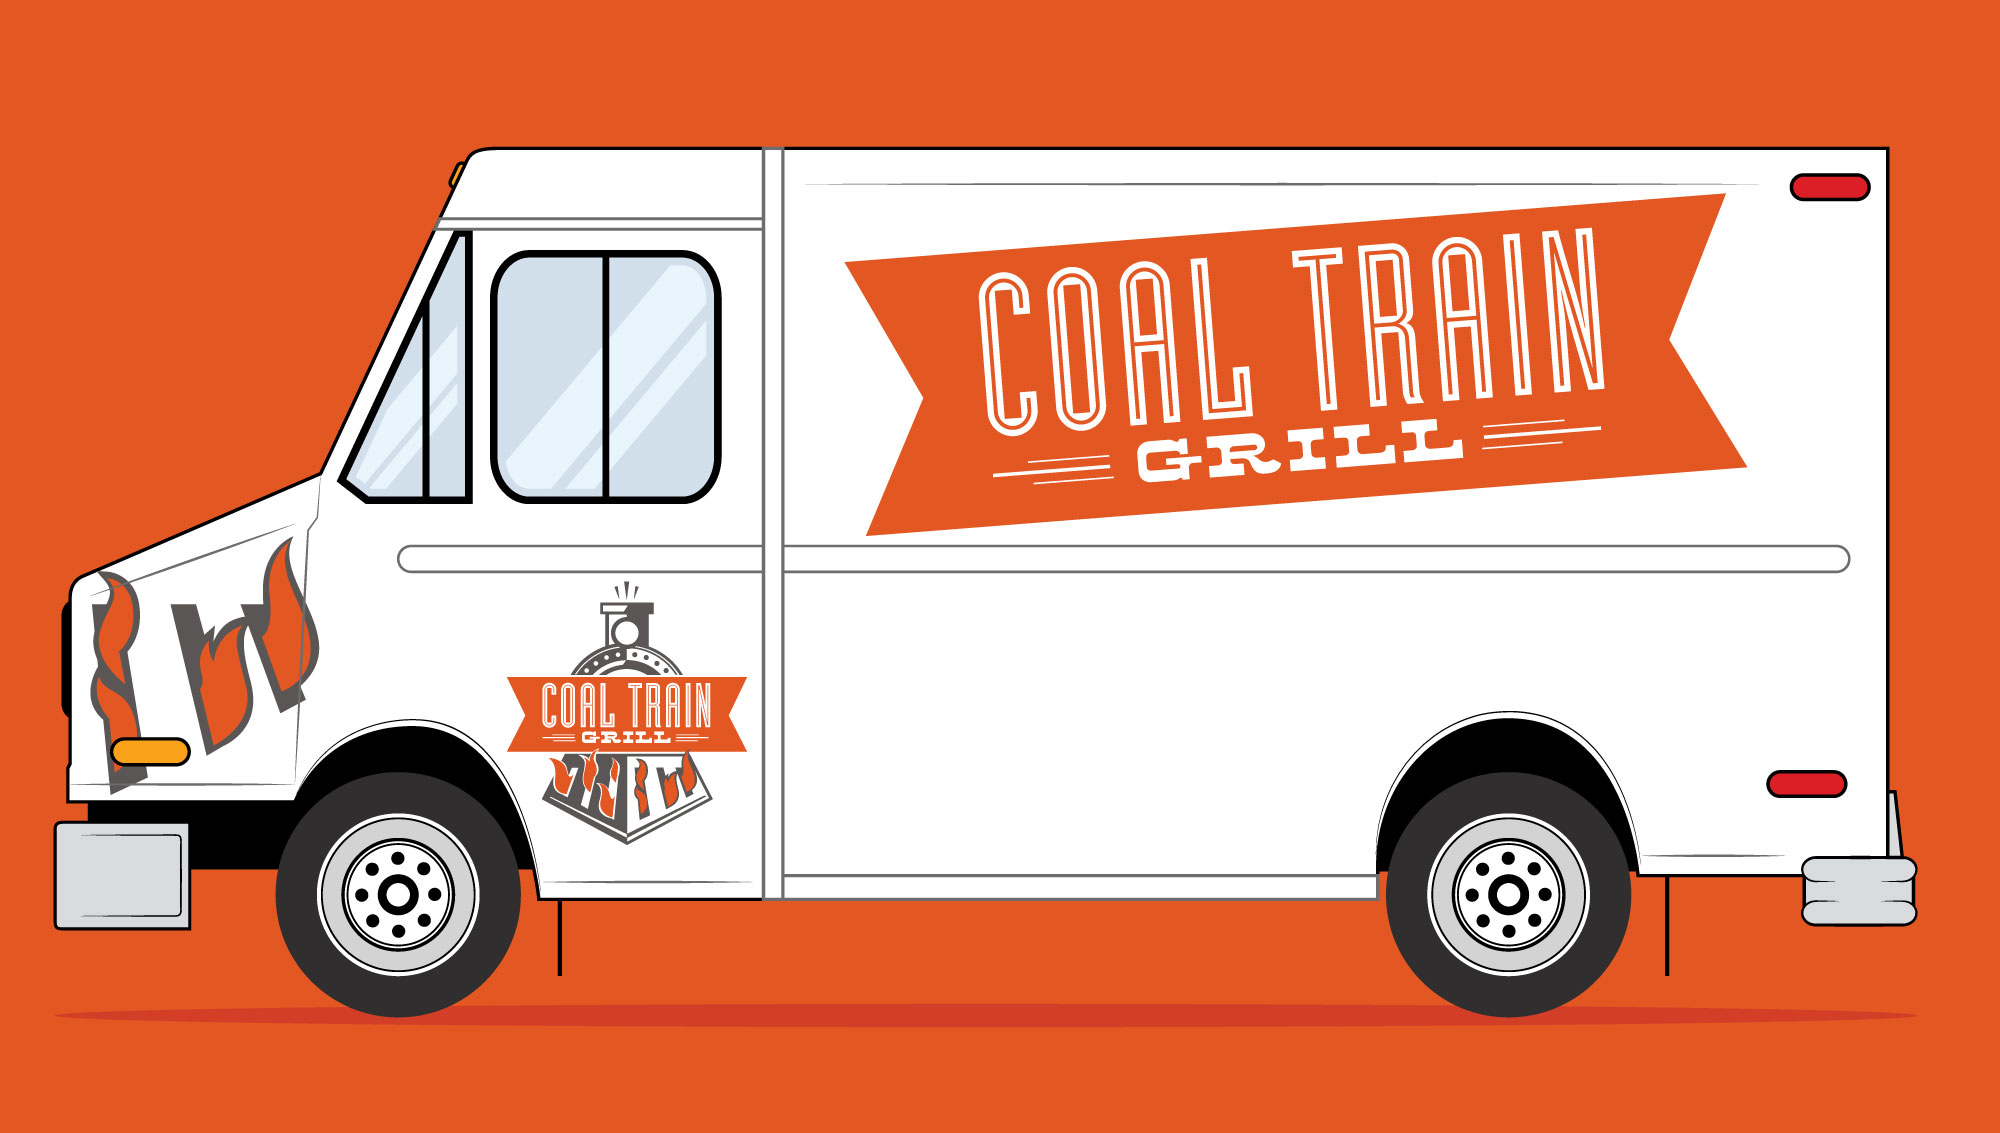 coal train grill food truck mock up